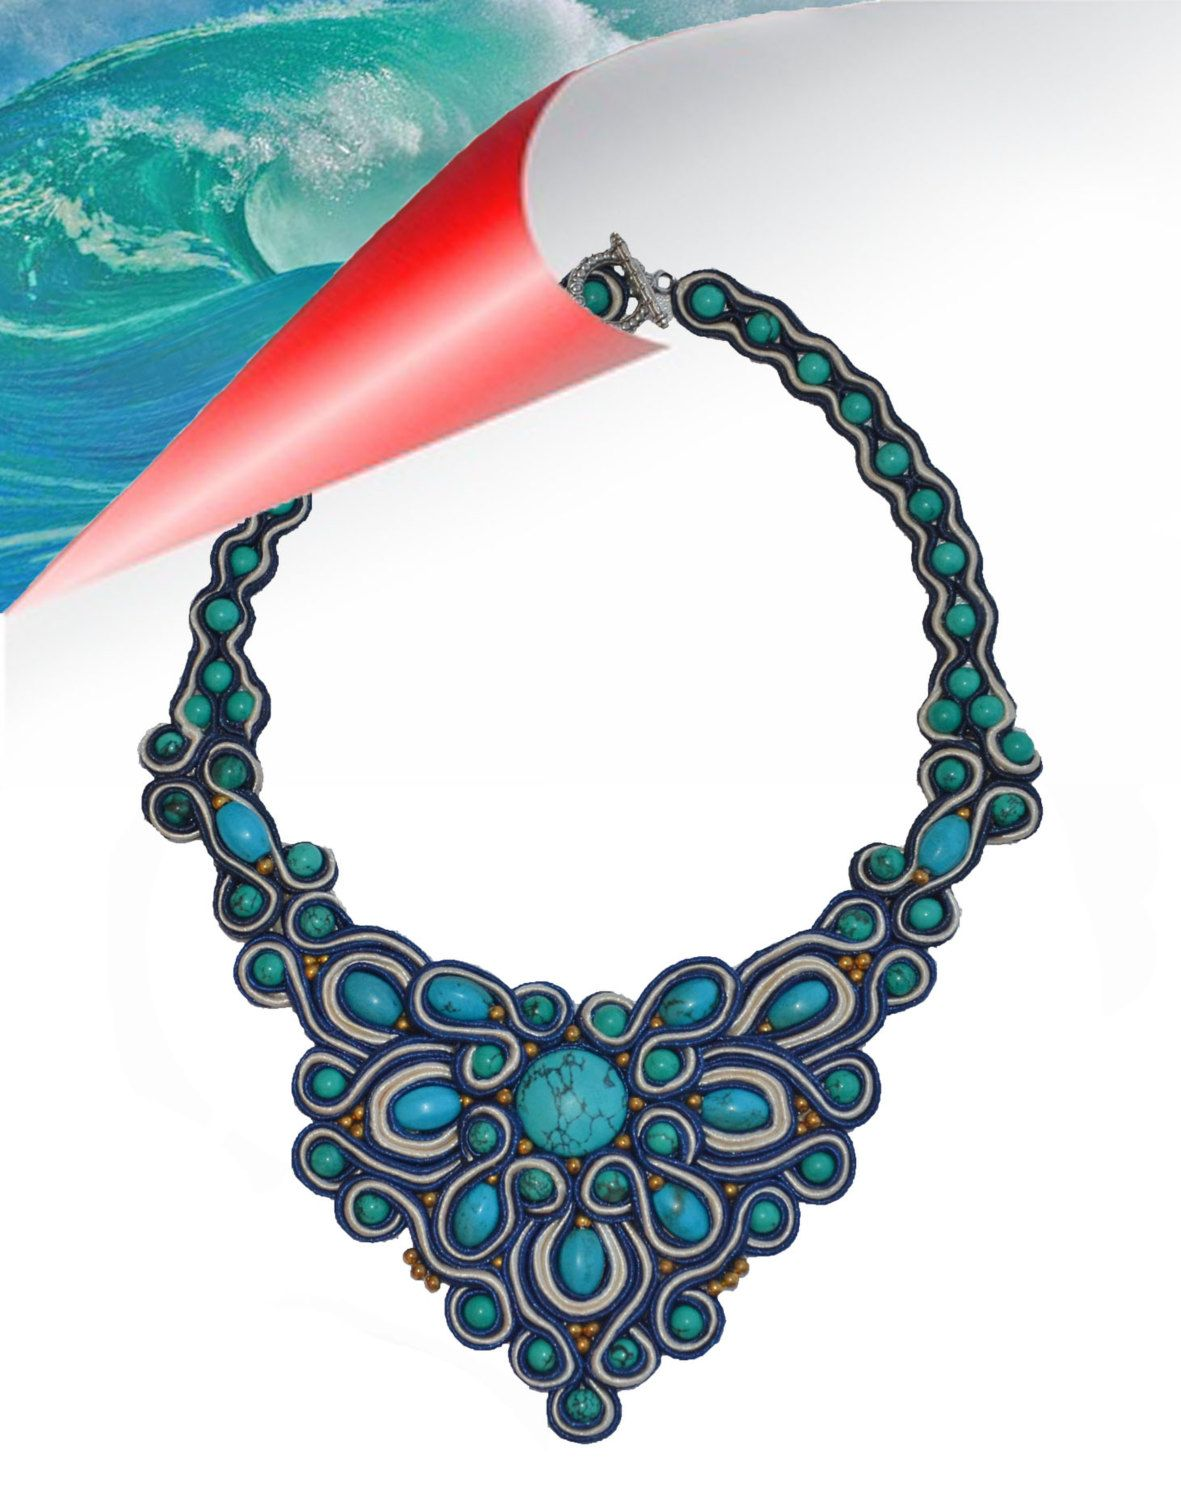 Necklace «Turquoise waves» by MilonaSoutache on Etsy